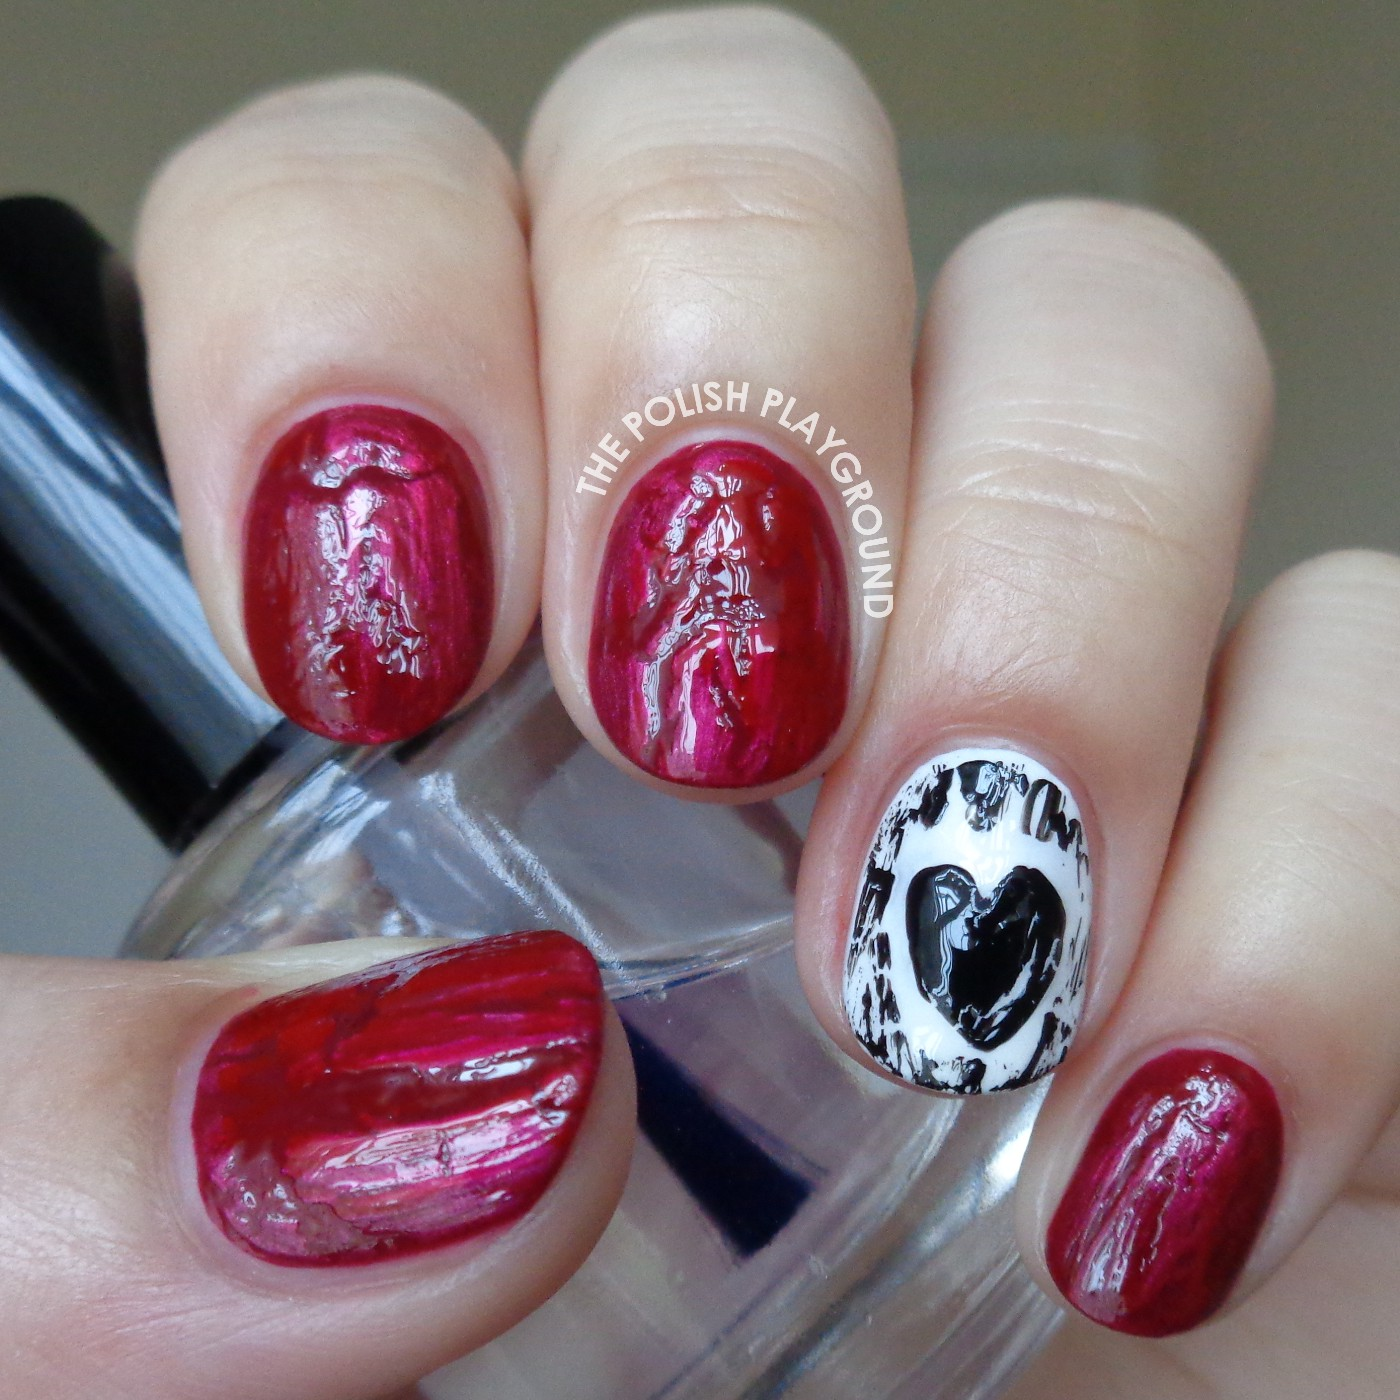 Broken Hearts Anti-Valentine's Day Nail Art